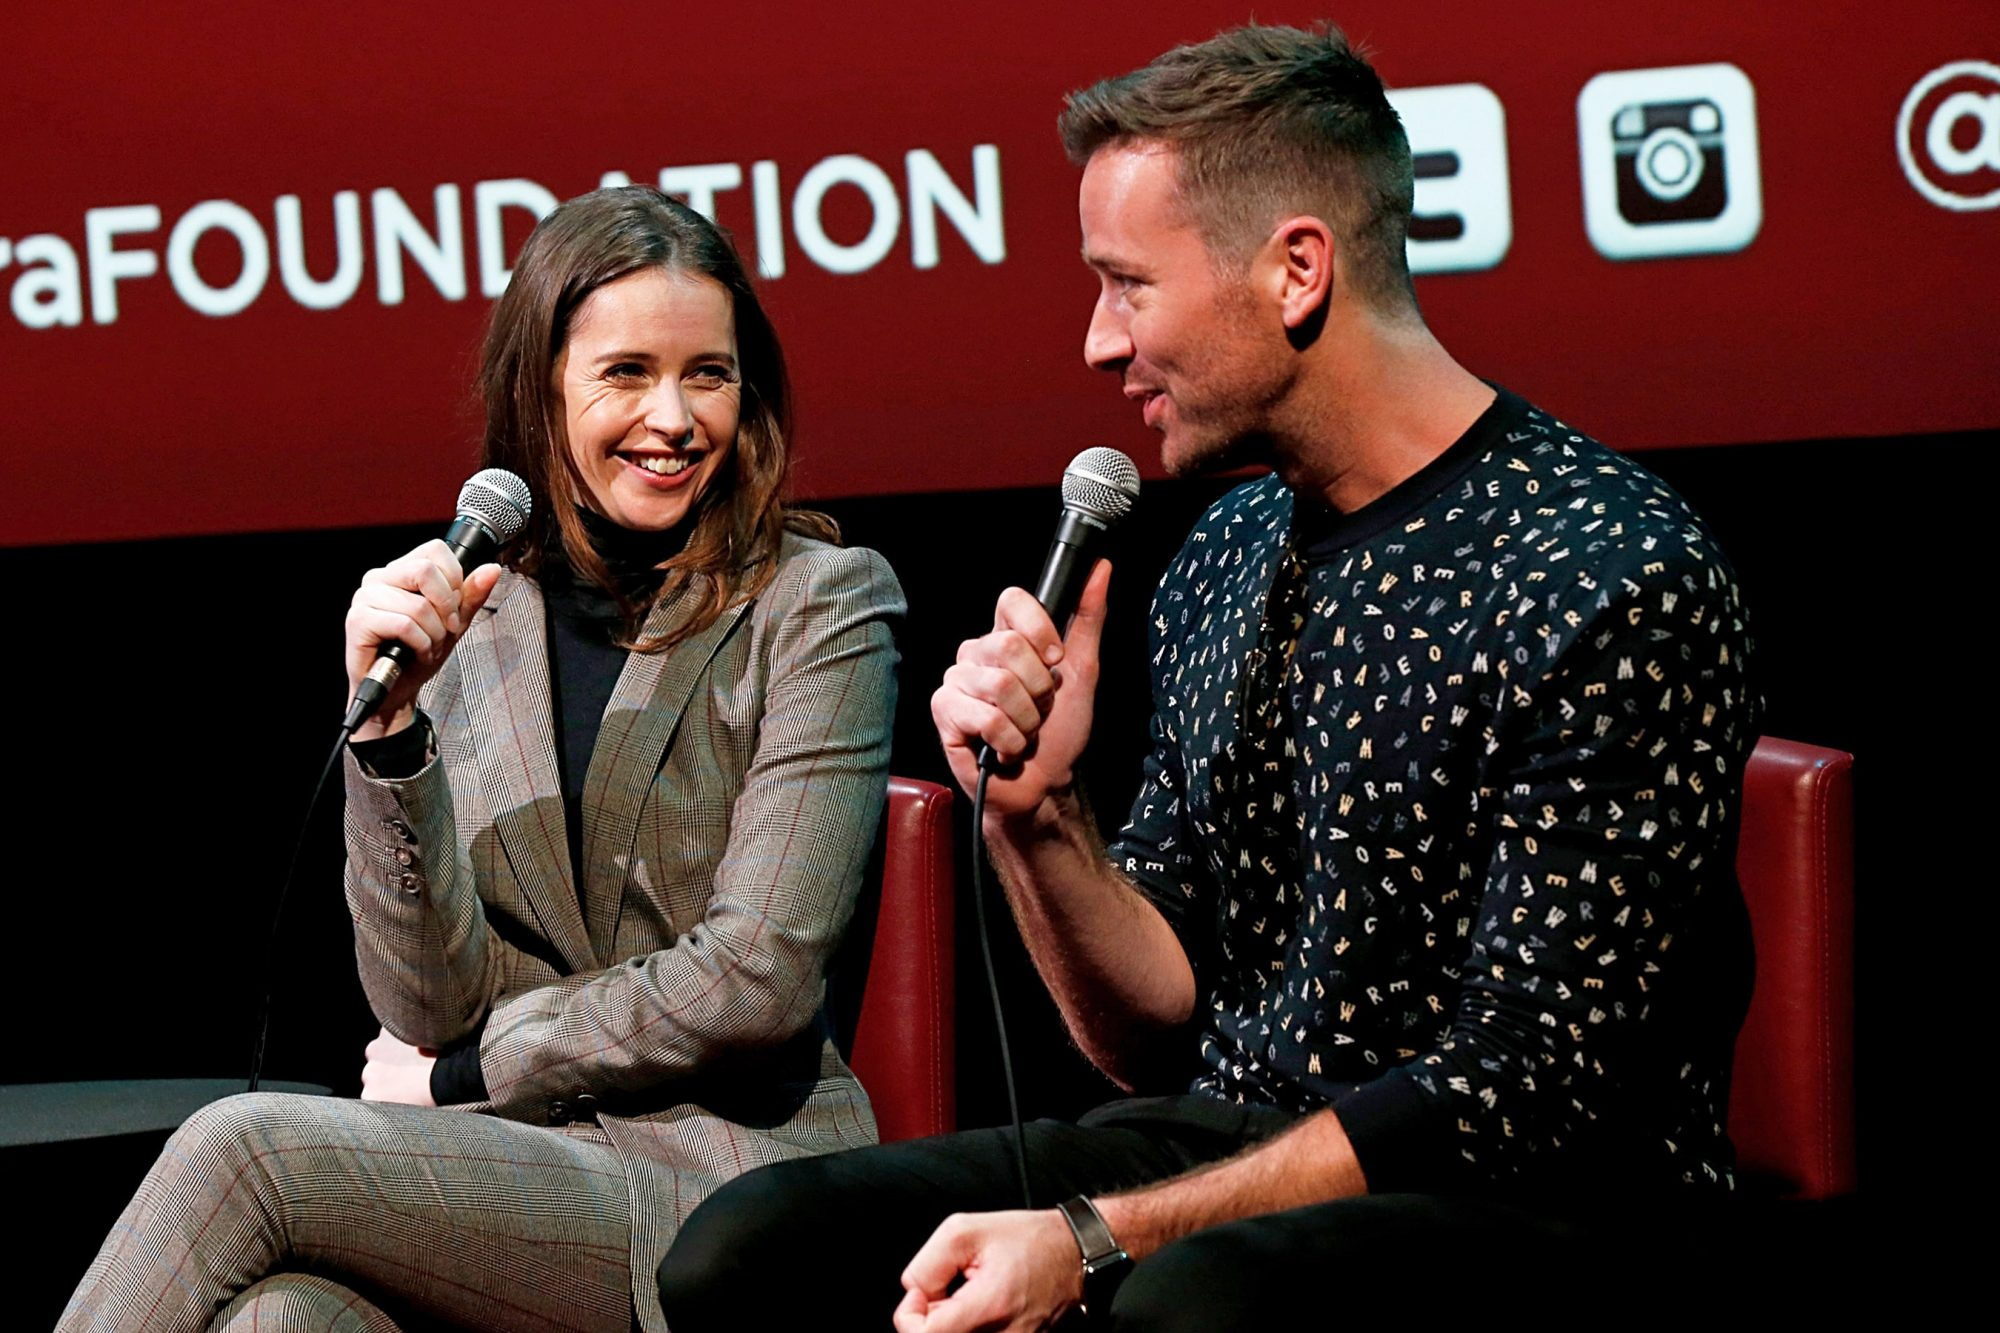 """SAG-AFTRA Foundation Conversations: """"On The Basis Of Sex"""" With Felicity Jones And Armie Hammer"""